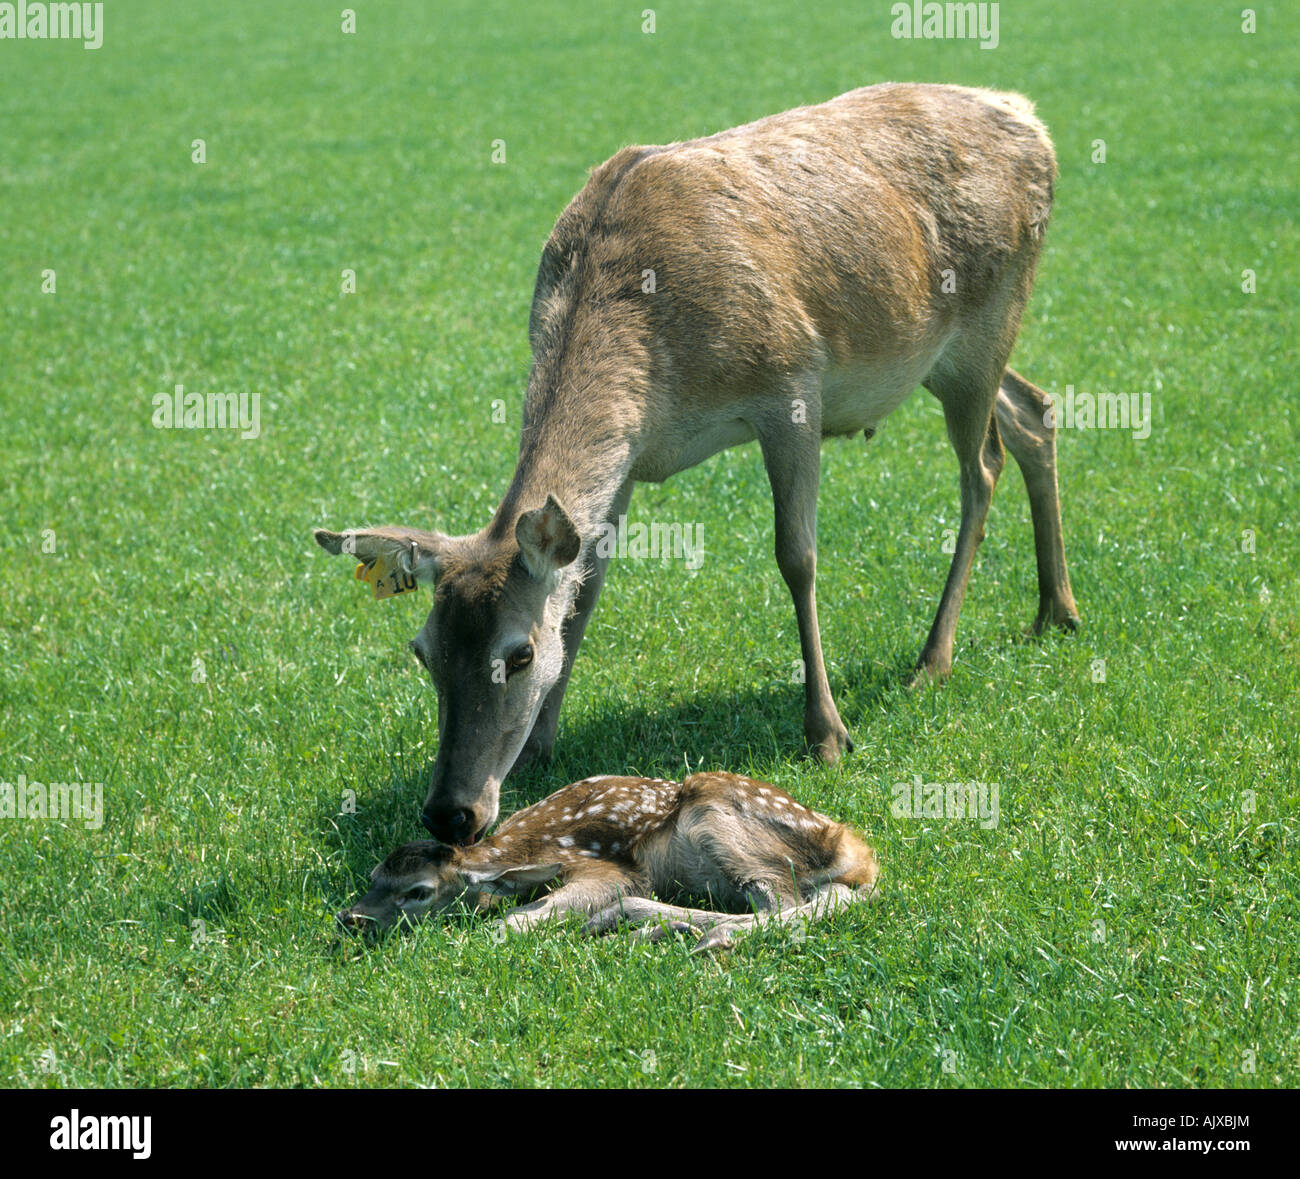 Farmed red deer hind attending her young calf on grass - Stock Image